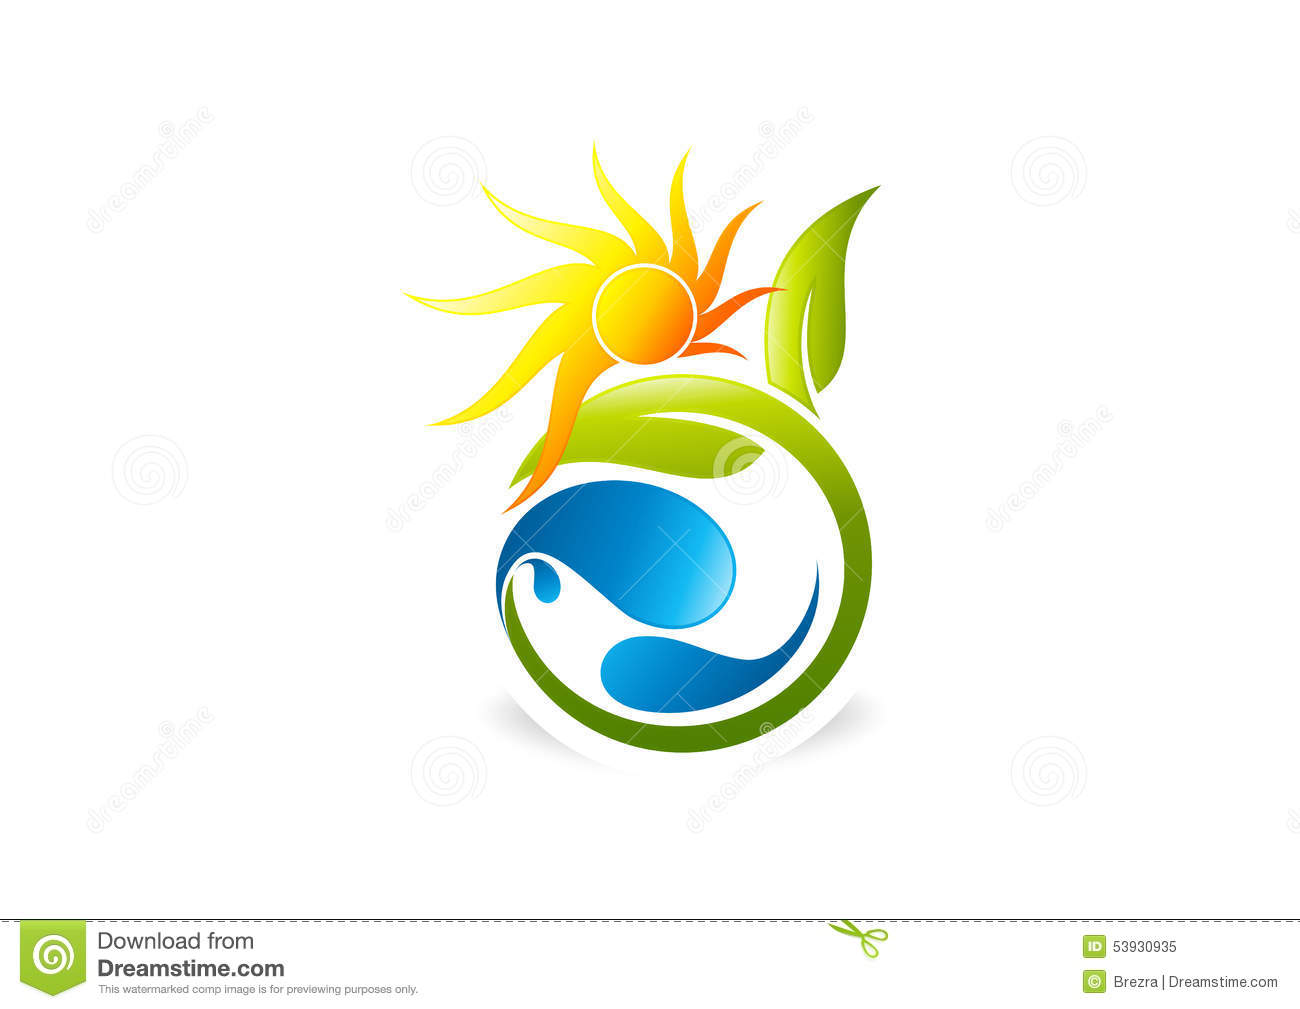 sun  plant  people  water natural logo  icon health leaf natural resources clipart Natural Resource Map